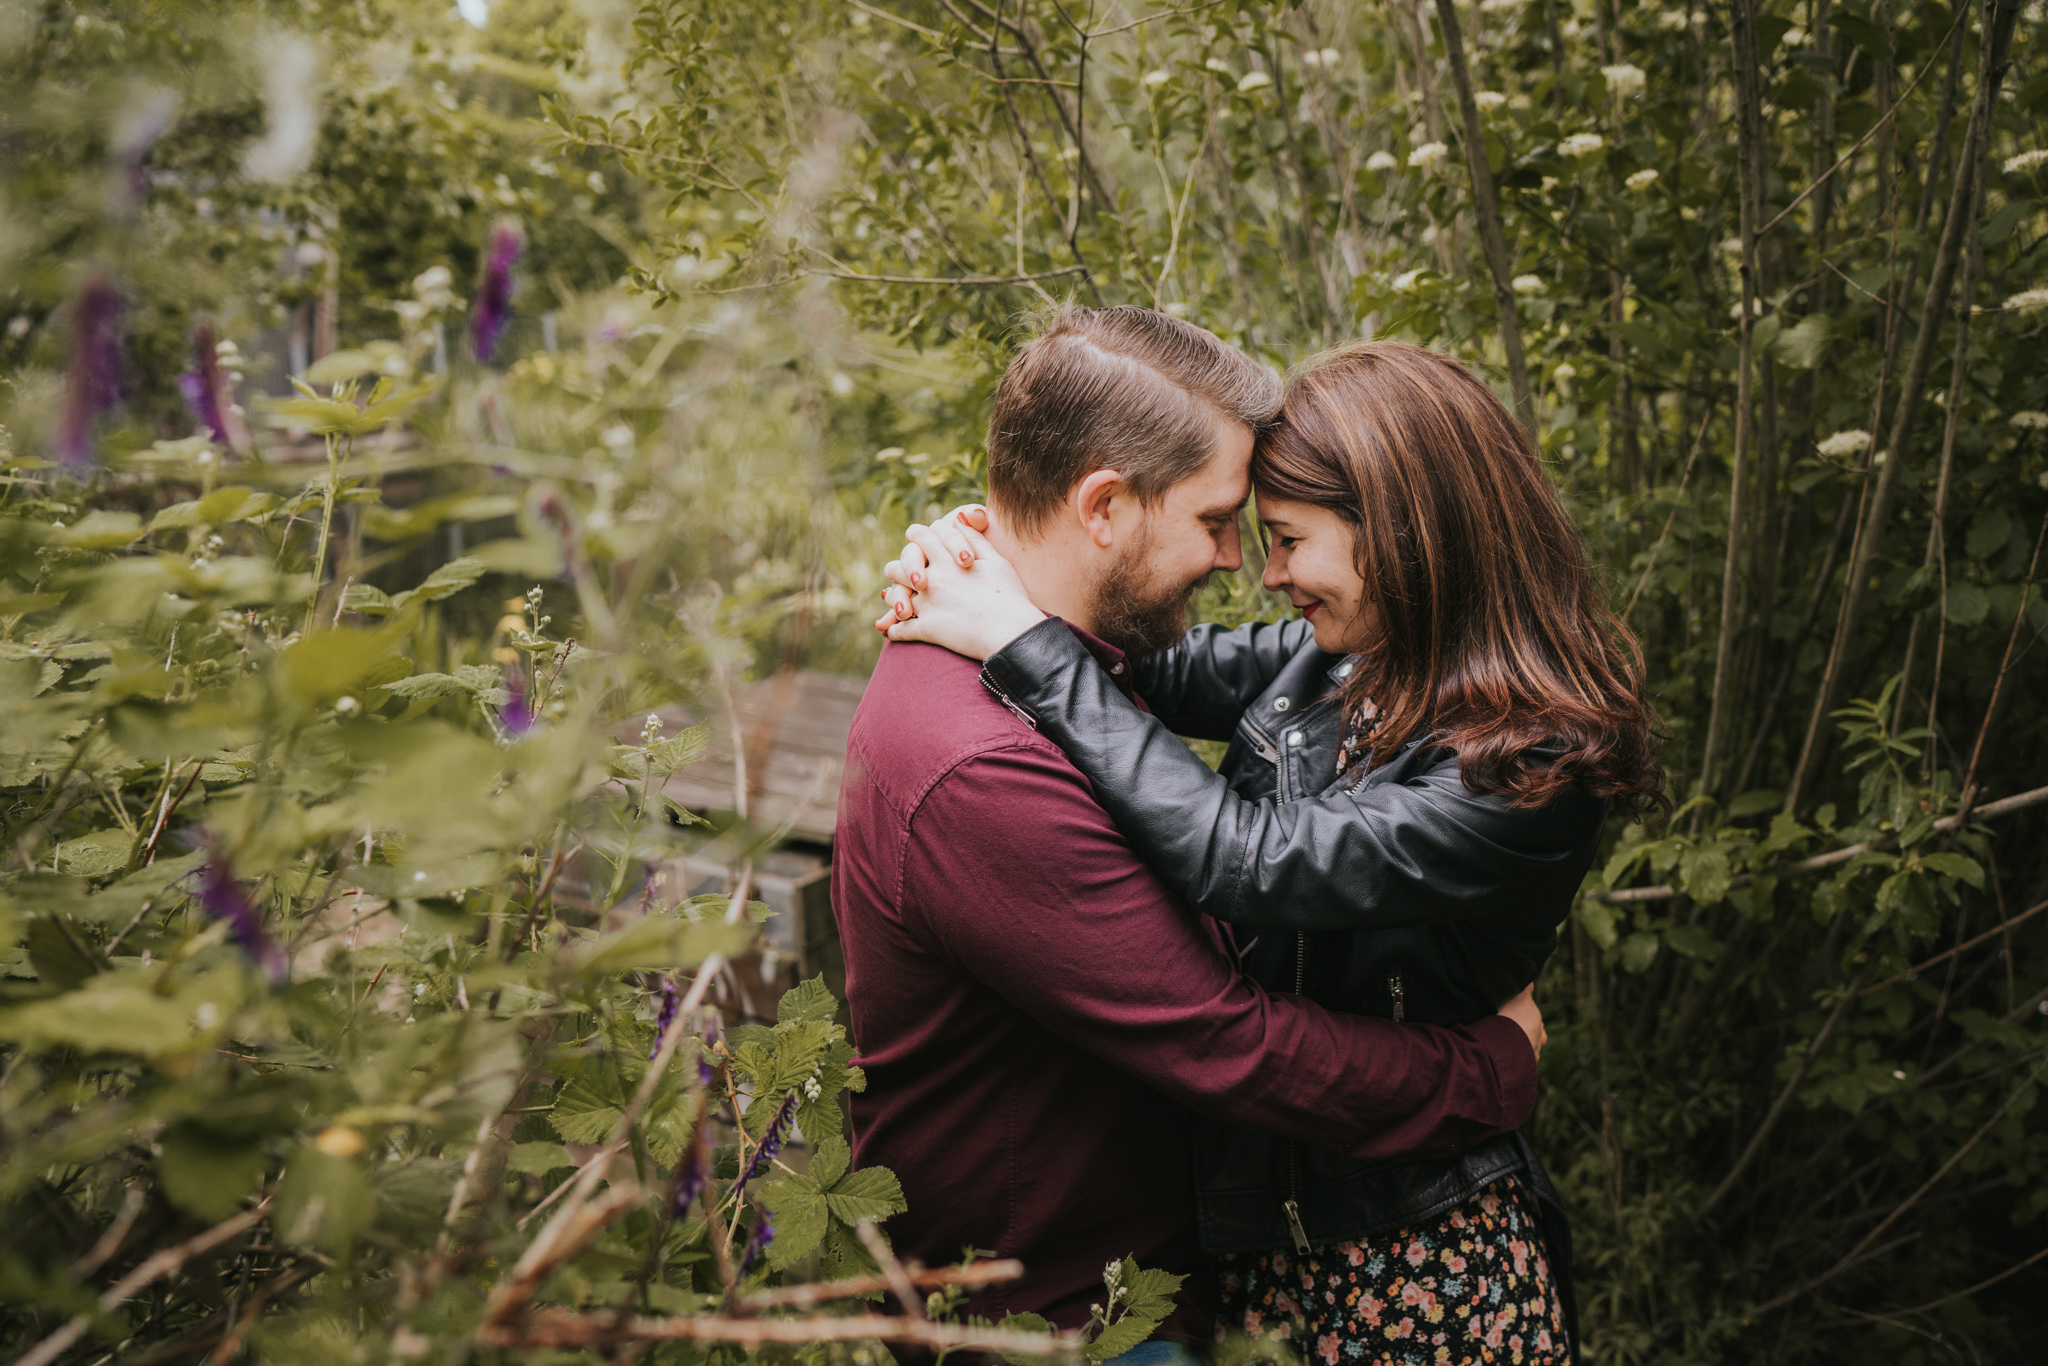 natalie-john-urban-london-engagement-grace-elizabeth-colchester-essex-alternative-wedding-photographer-essex-suffolk-norfolk-devon (24 of 66).jpg